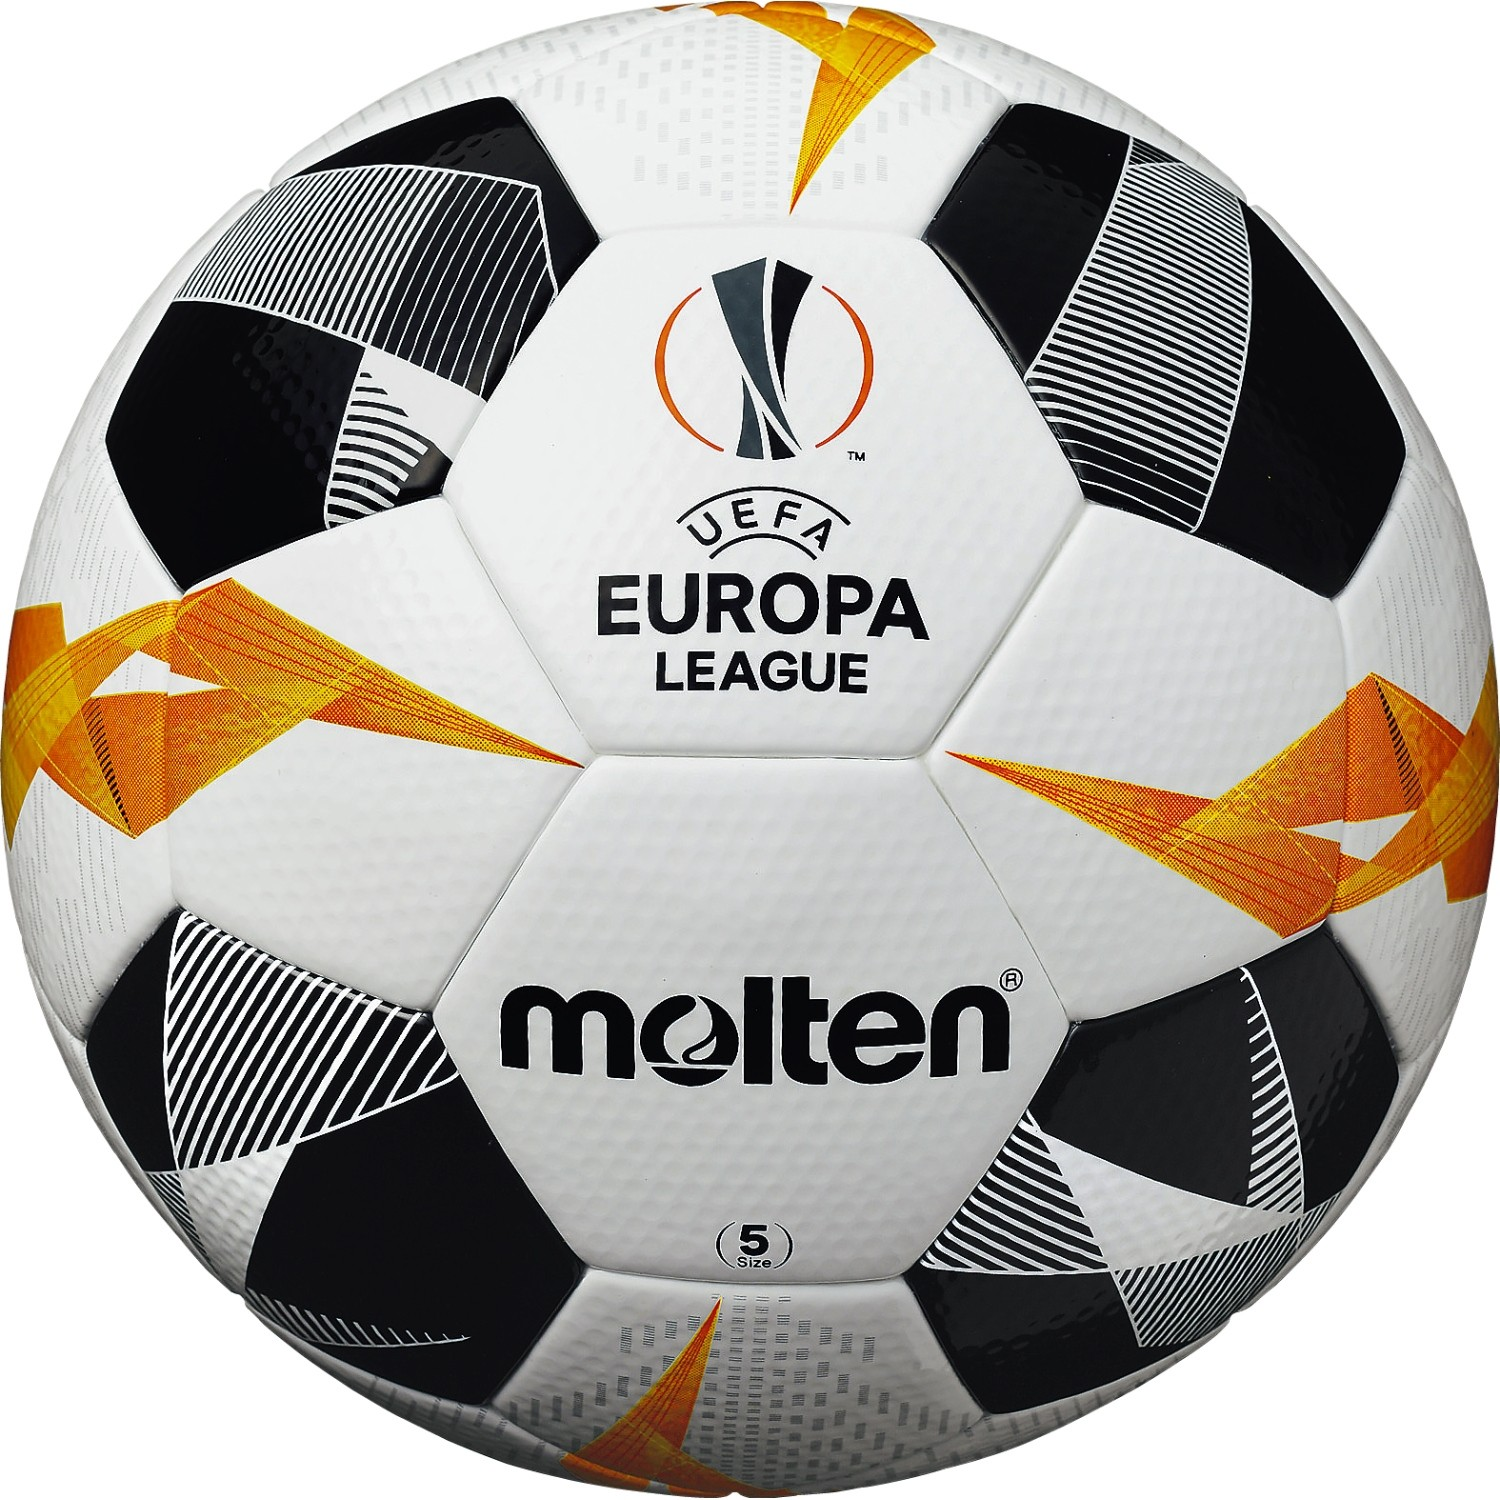 uefa europa league official match football 5003 official online store uefa europa league official match